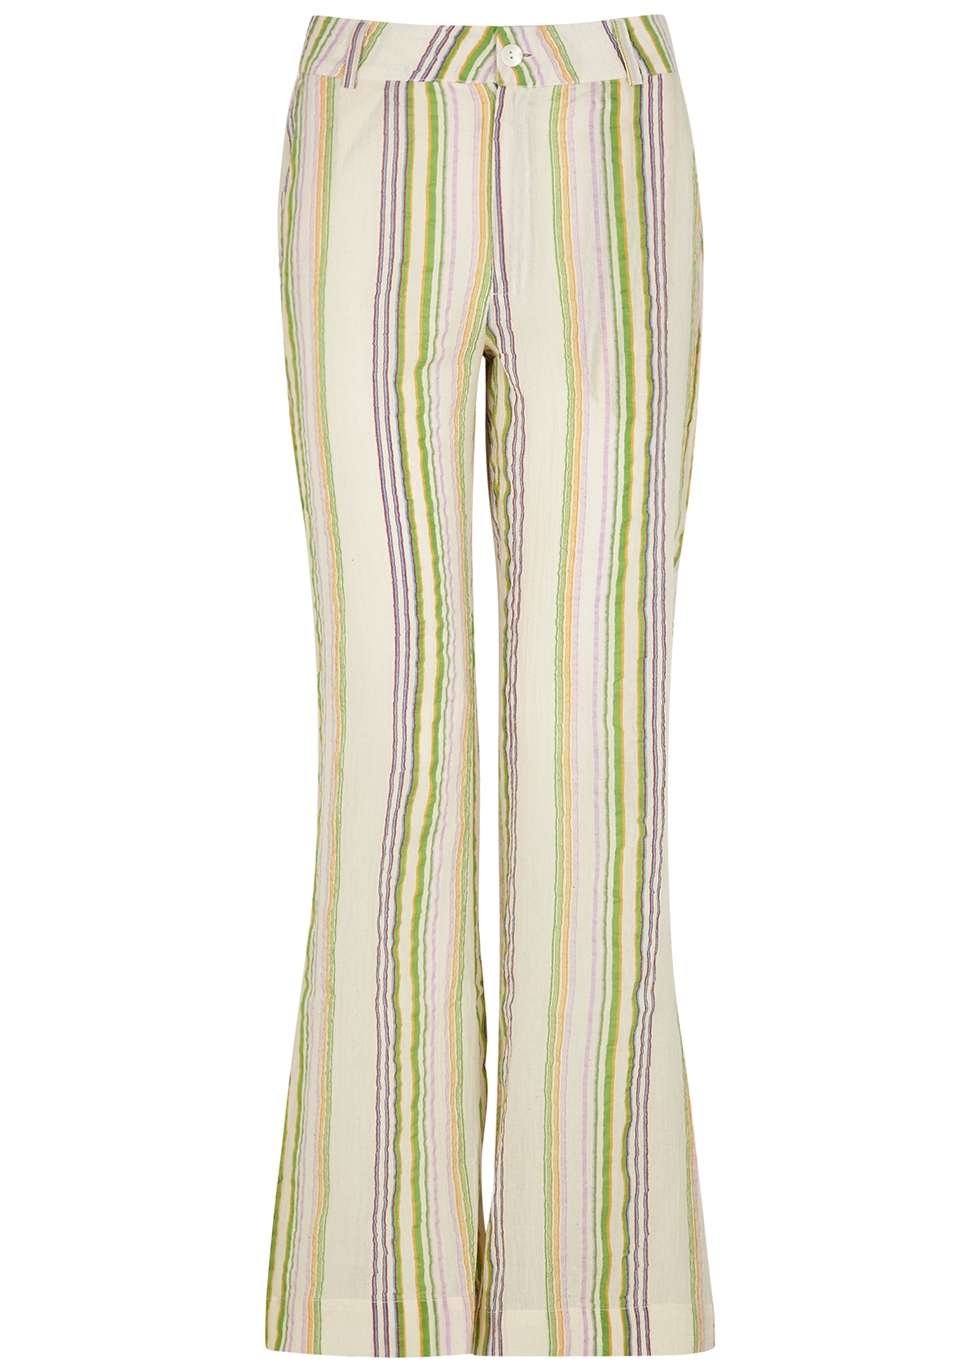 San striped flared cotton trousers